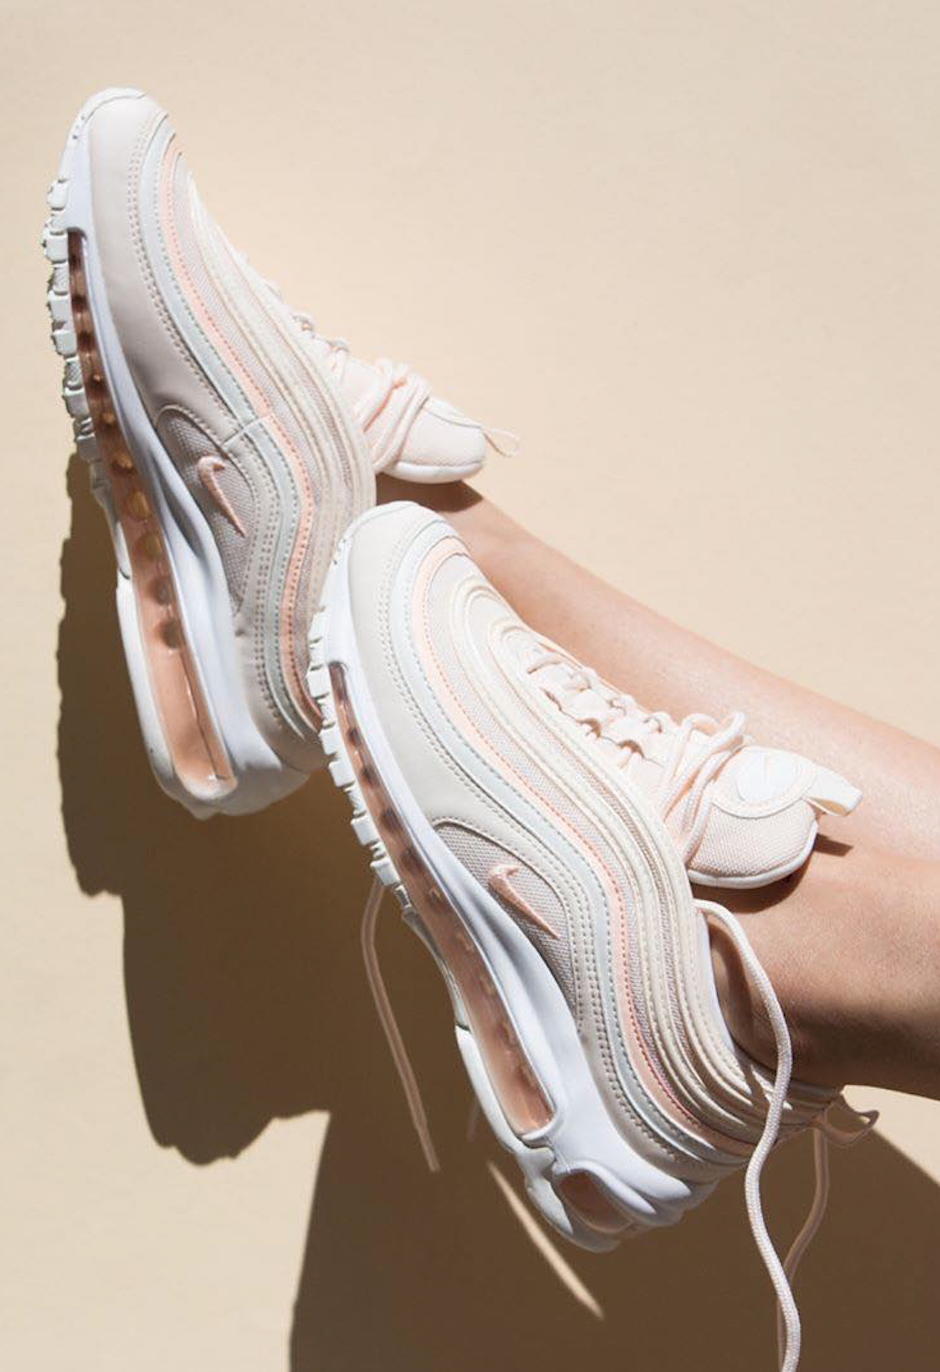 b0679c62de523 Stylish Nike shoes. The new Nike Air Max 97 OG sneakers in a guava   ice    pink   peach   cream   salmon   beige colour.